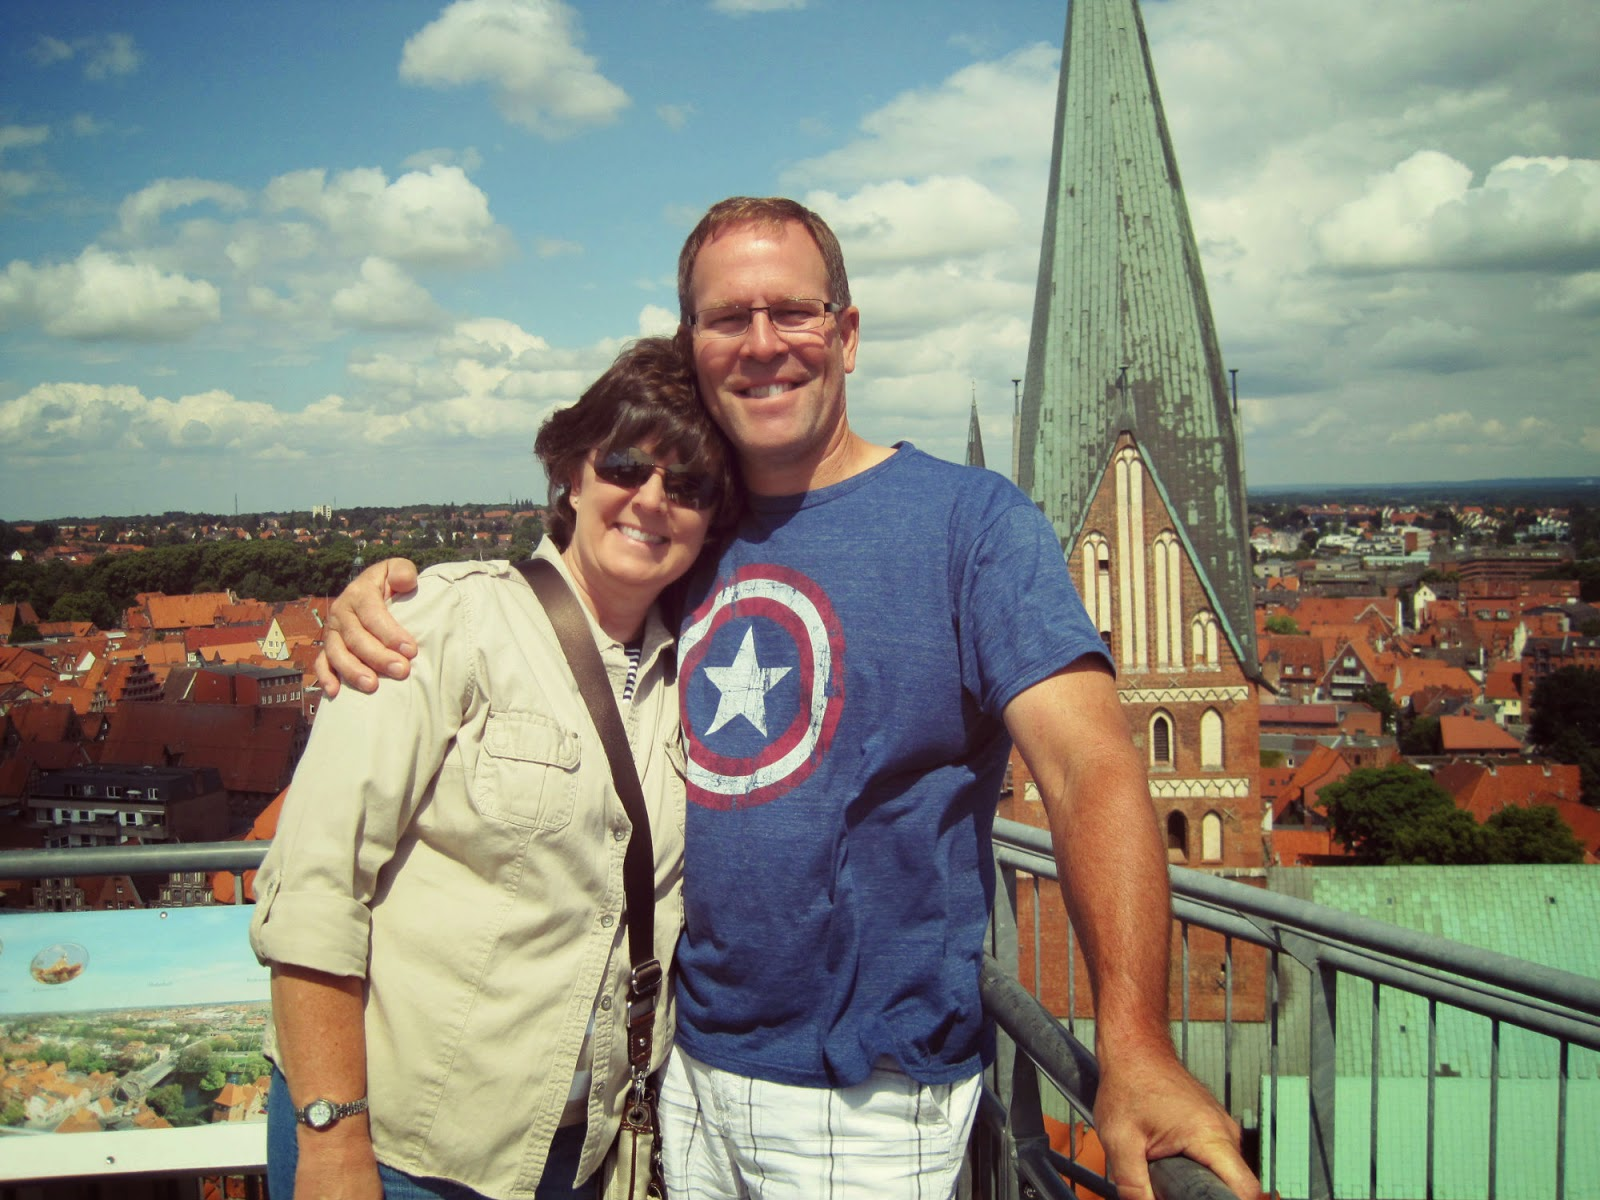 On top of the Lüneburg water tower